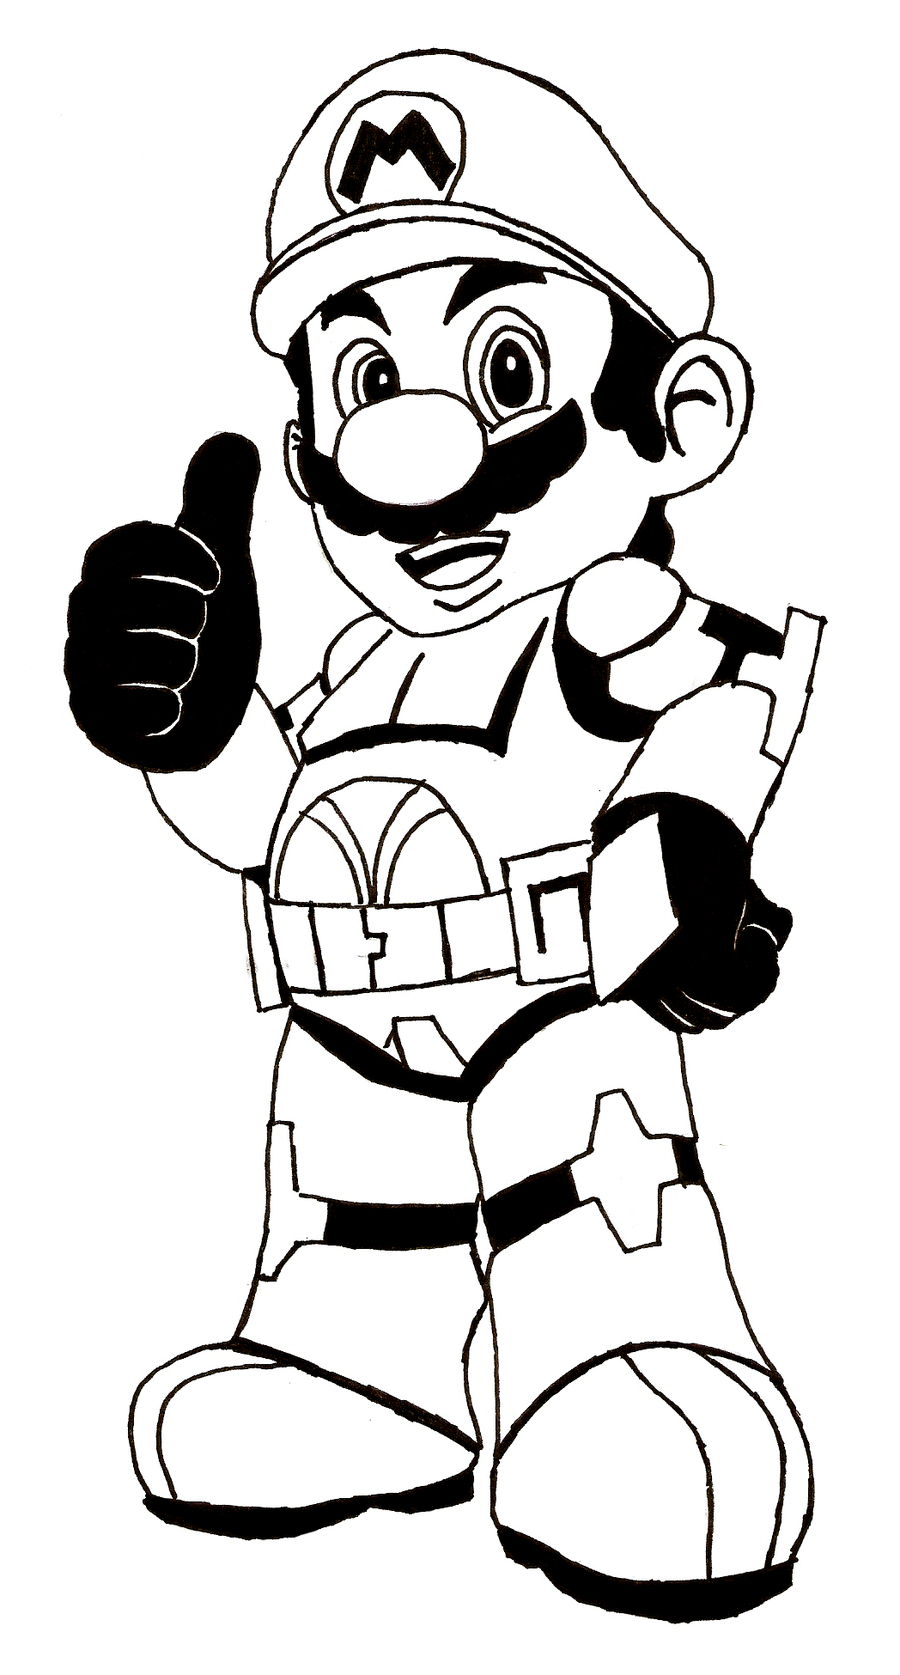 Mario Brothers Printable Coloring Pages At Getdrawingscom Free